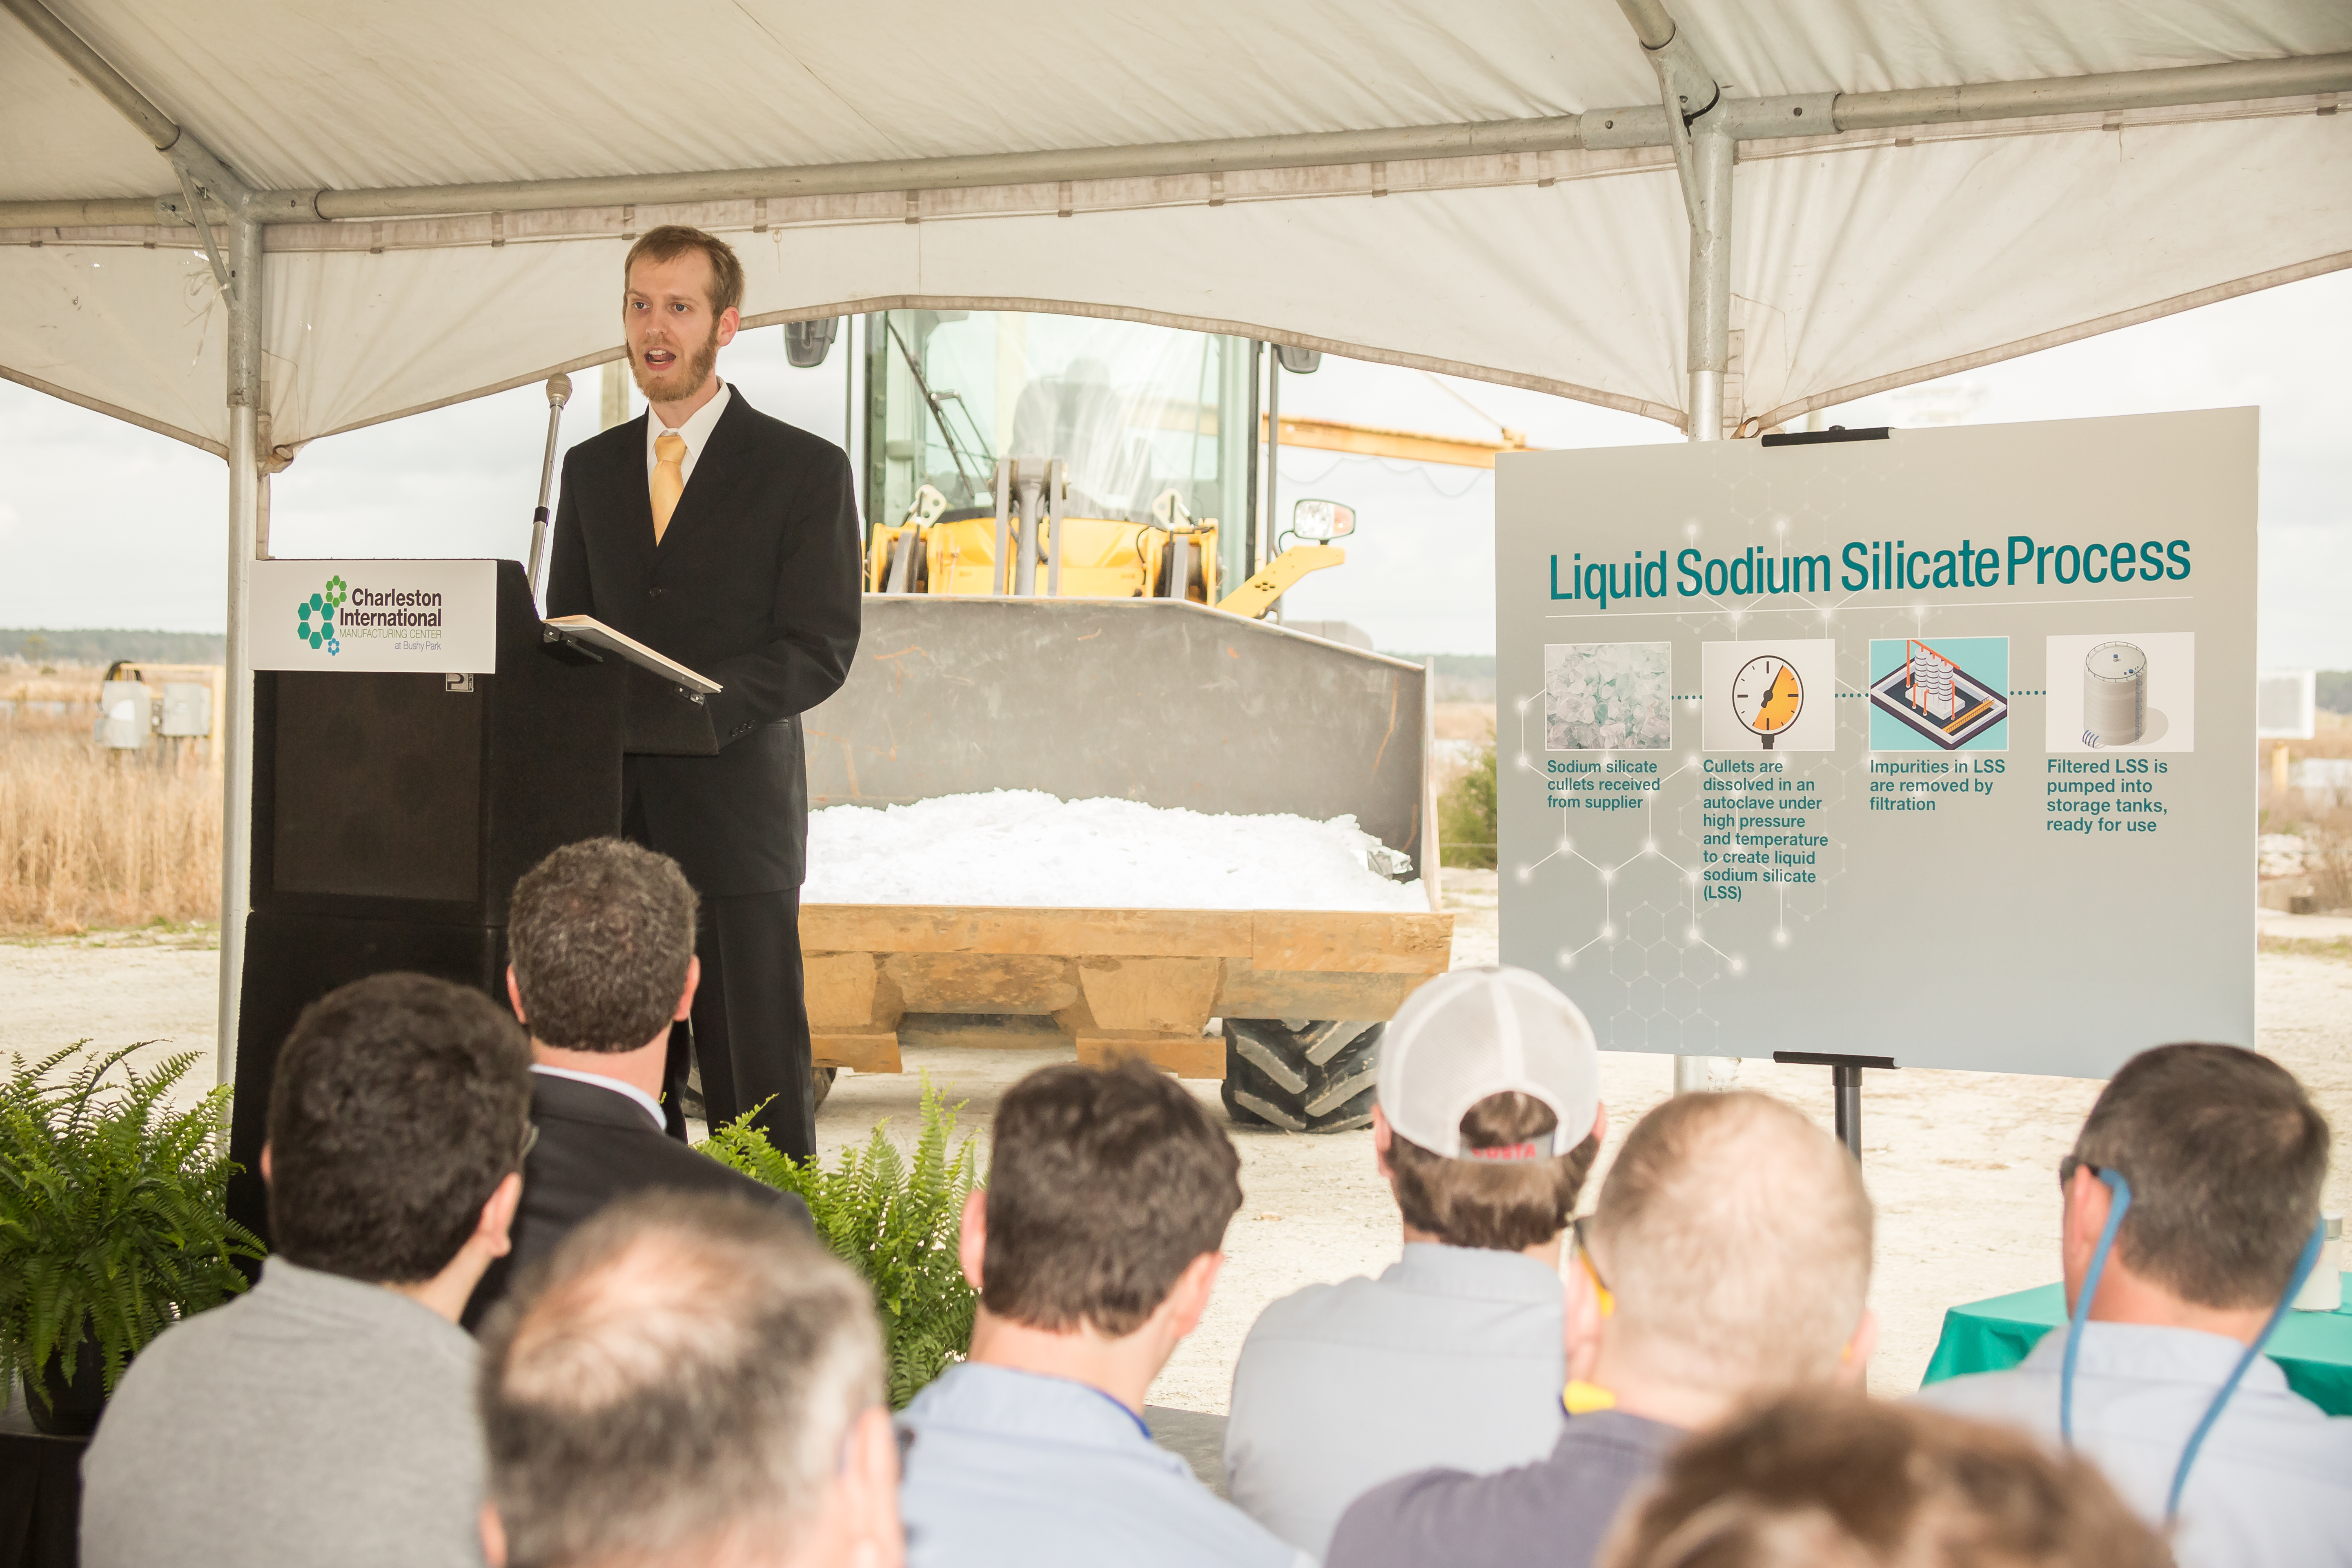 Charleston International Manufacturing Center Announces New Liquid Sodium Silicate Facility